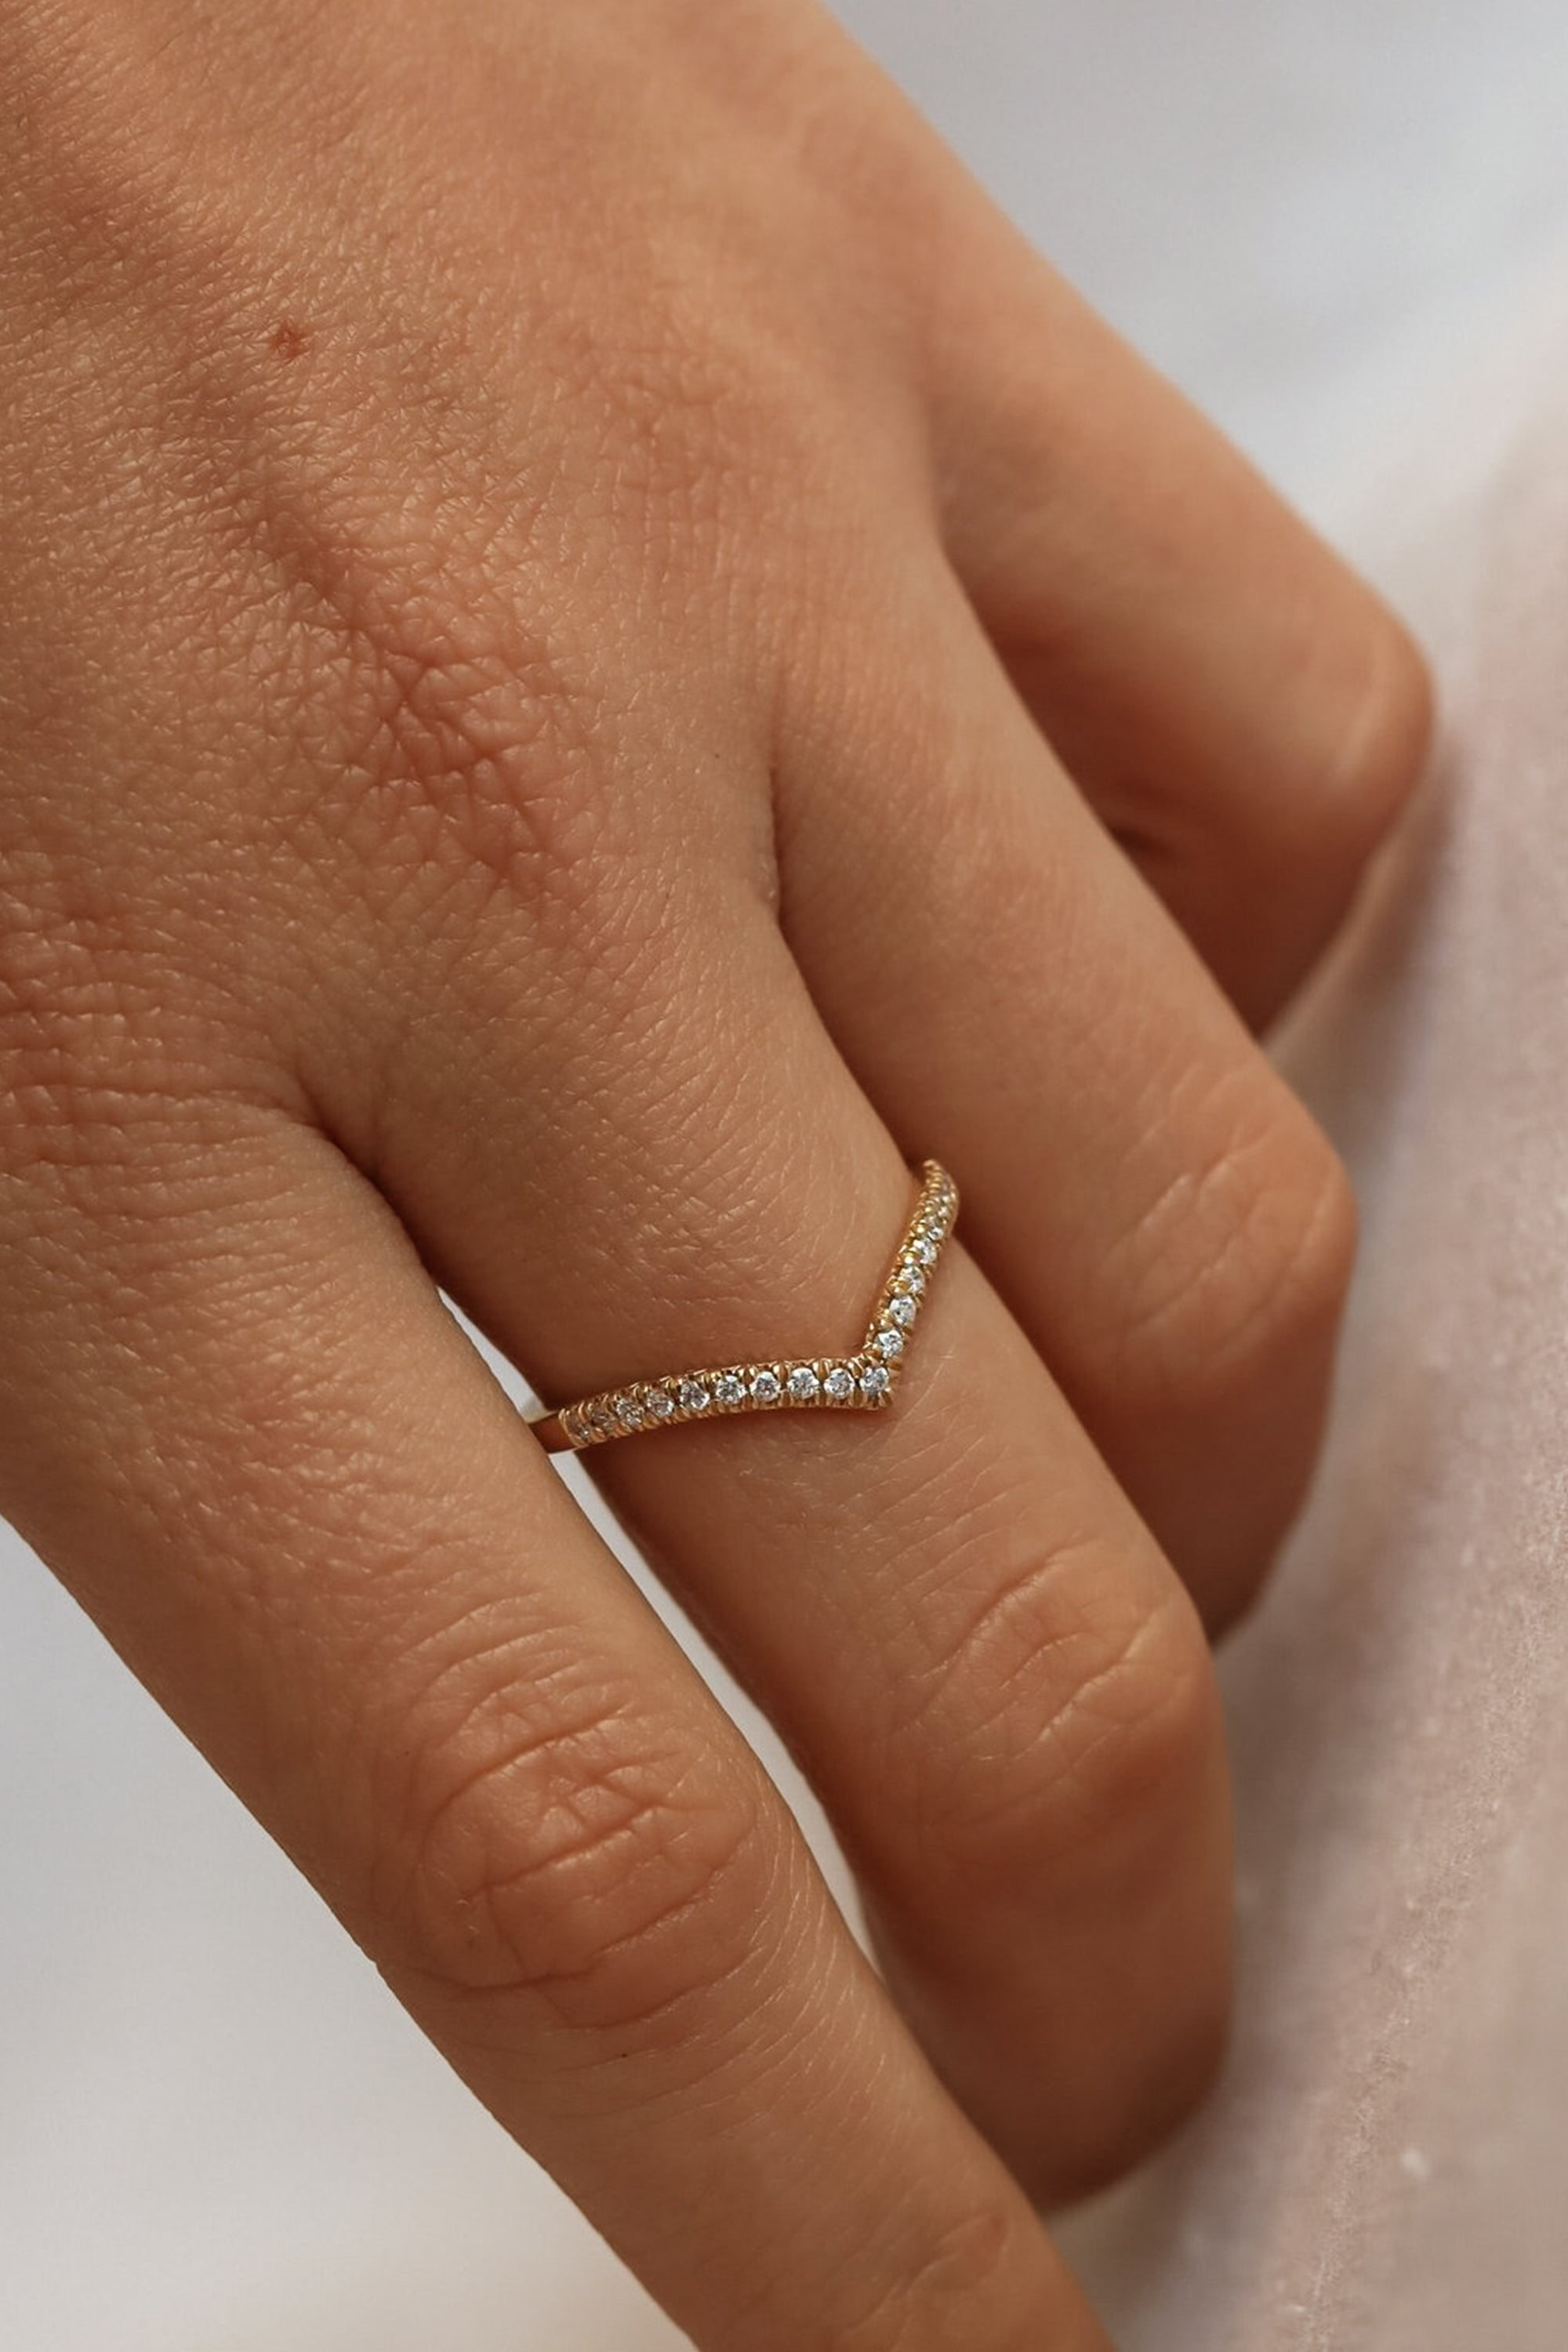 simple-gold-jewelry-solid-gold-pave-diamond-chevron-band